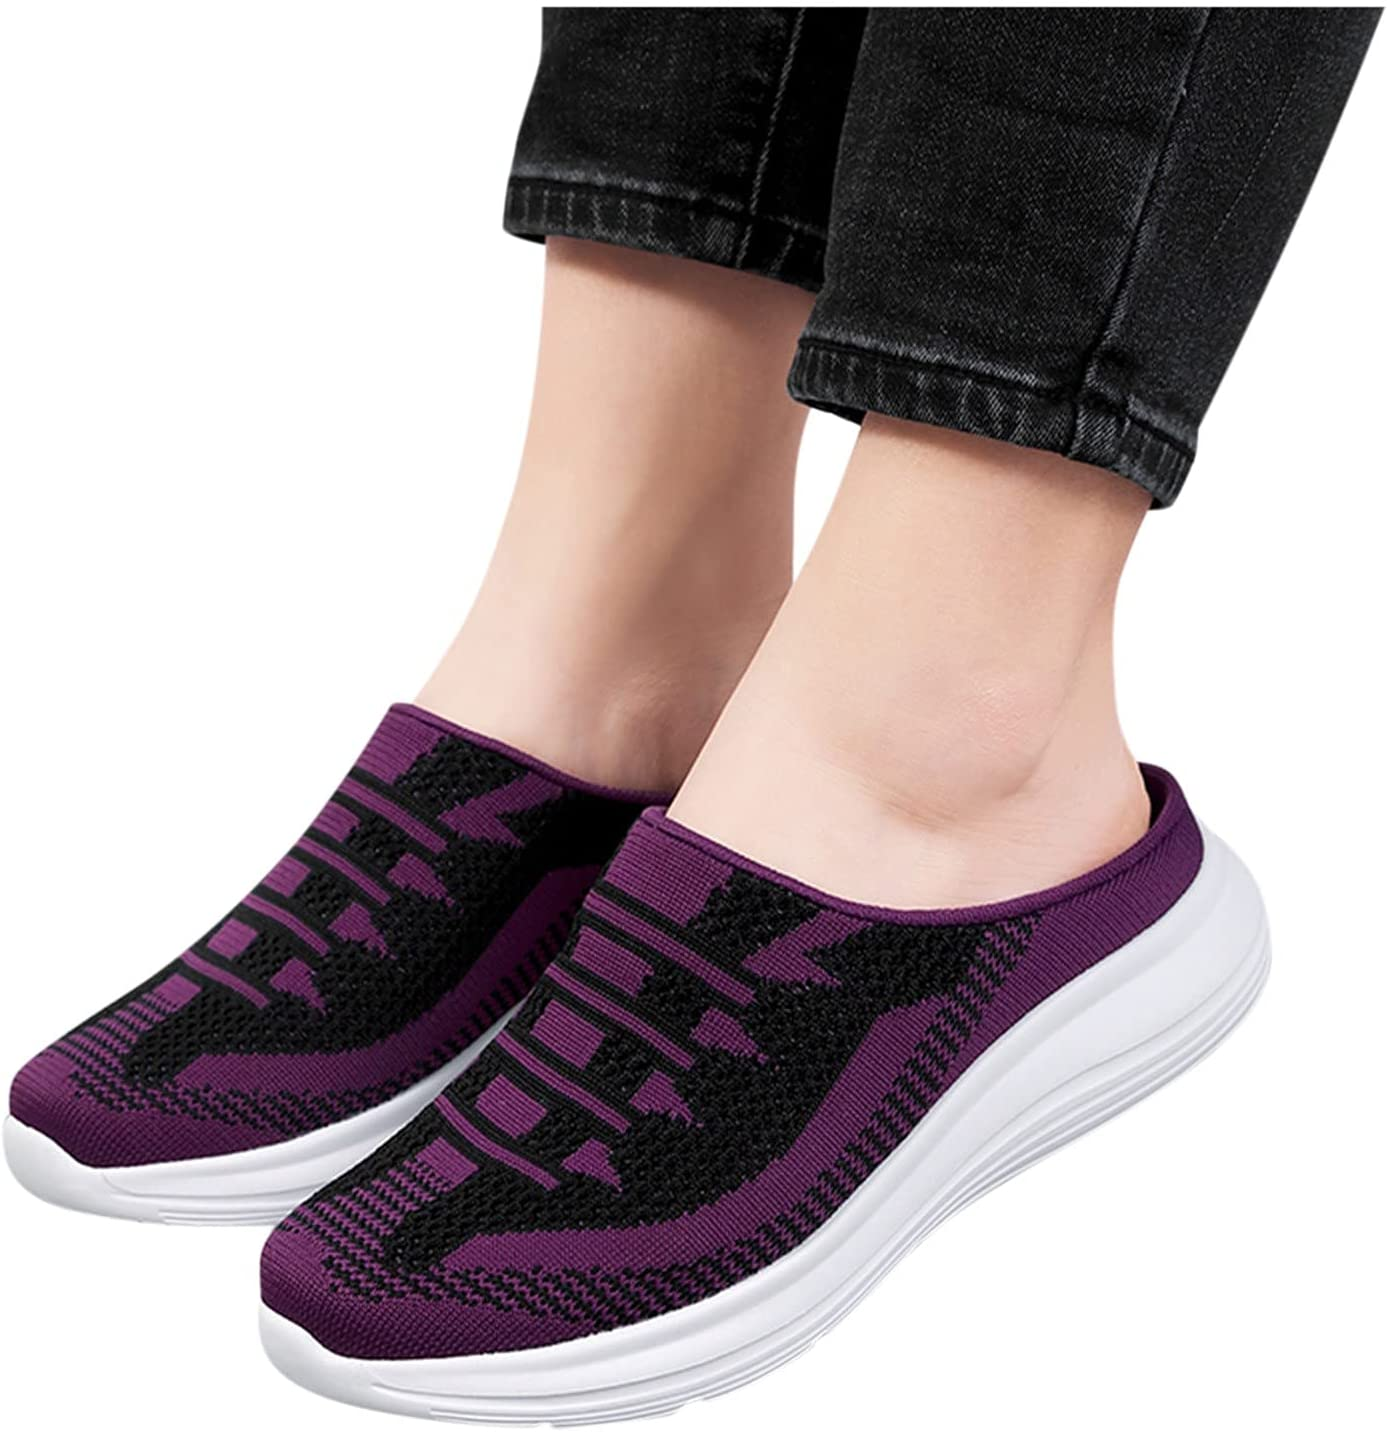 Sneaker Slippers Womens Breathable Mesh Shoes Platform Sneaker Casual Walking Dog Sandal Driving Shoes Comfy Sock Shoes